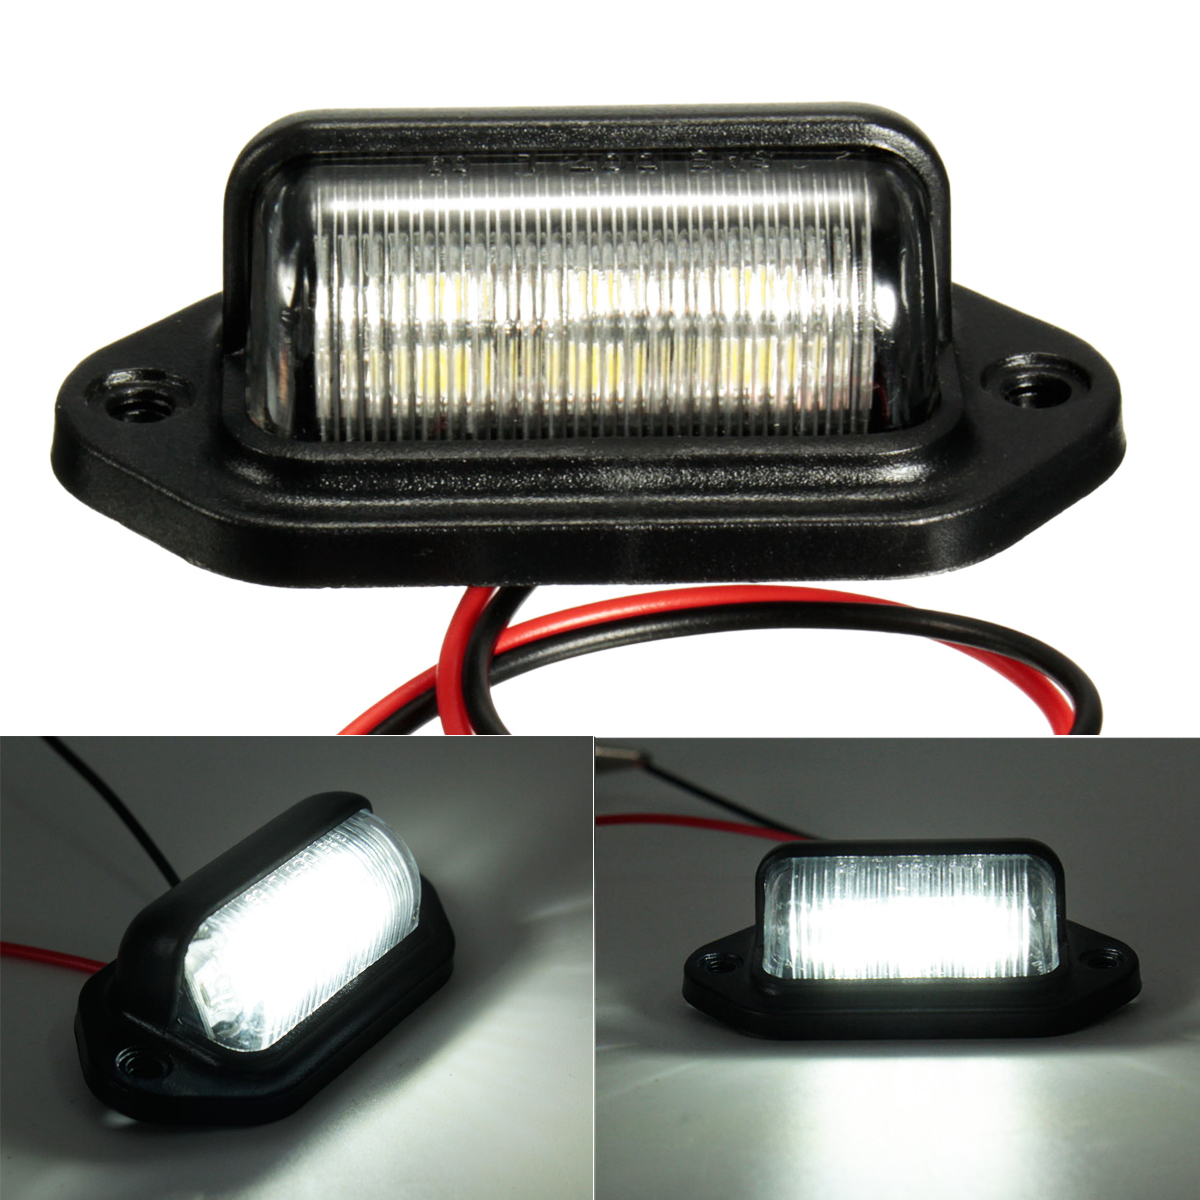 12V 6LEDs Number Plate Light License Plate Light Lamp Bulbs For Boats Motorcycle Automotive Aircraft RV Truck Trailer